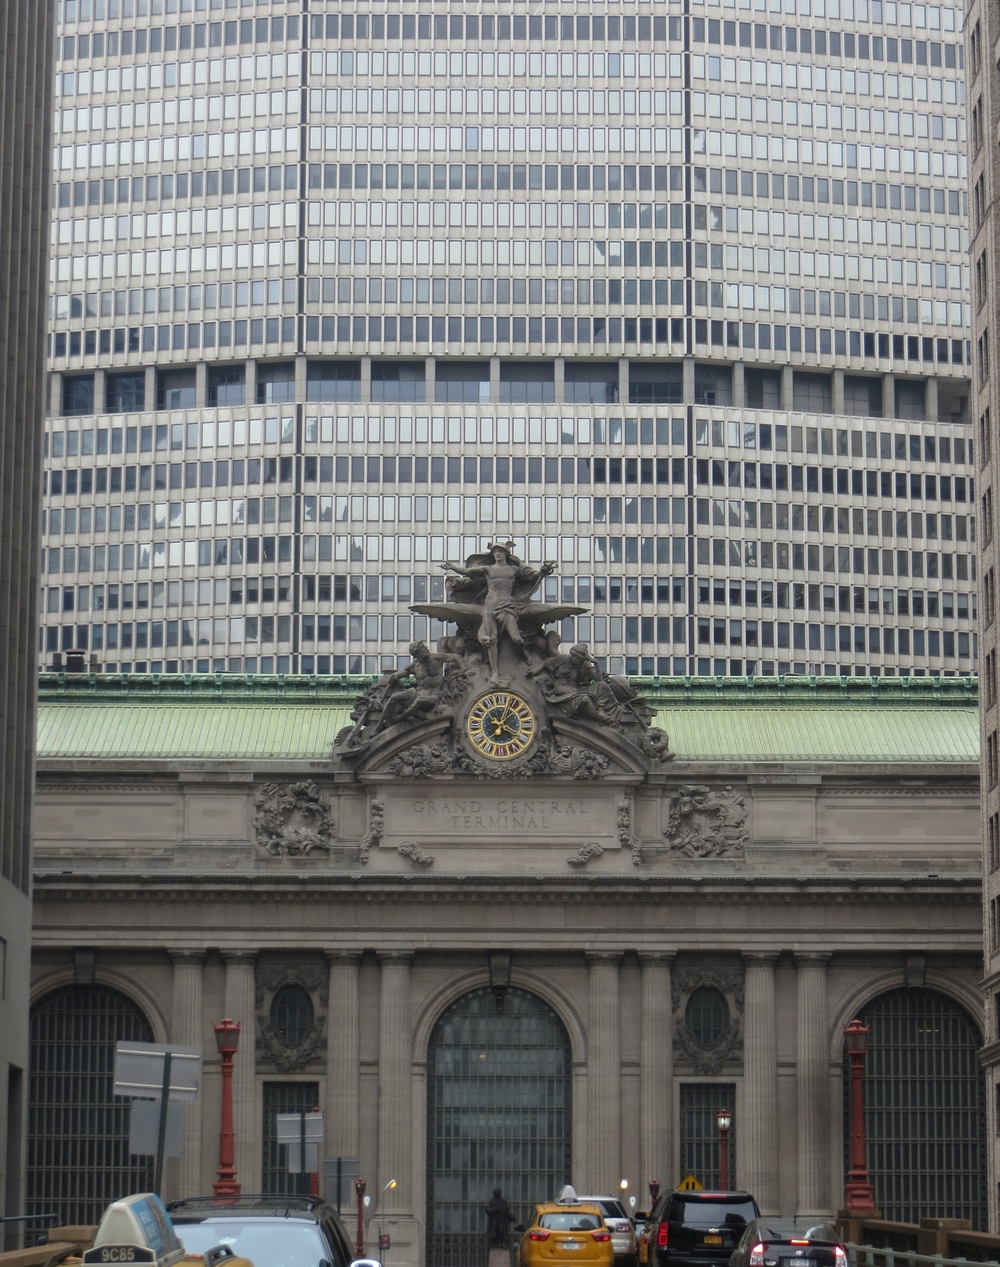 Grand Central Terminal front